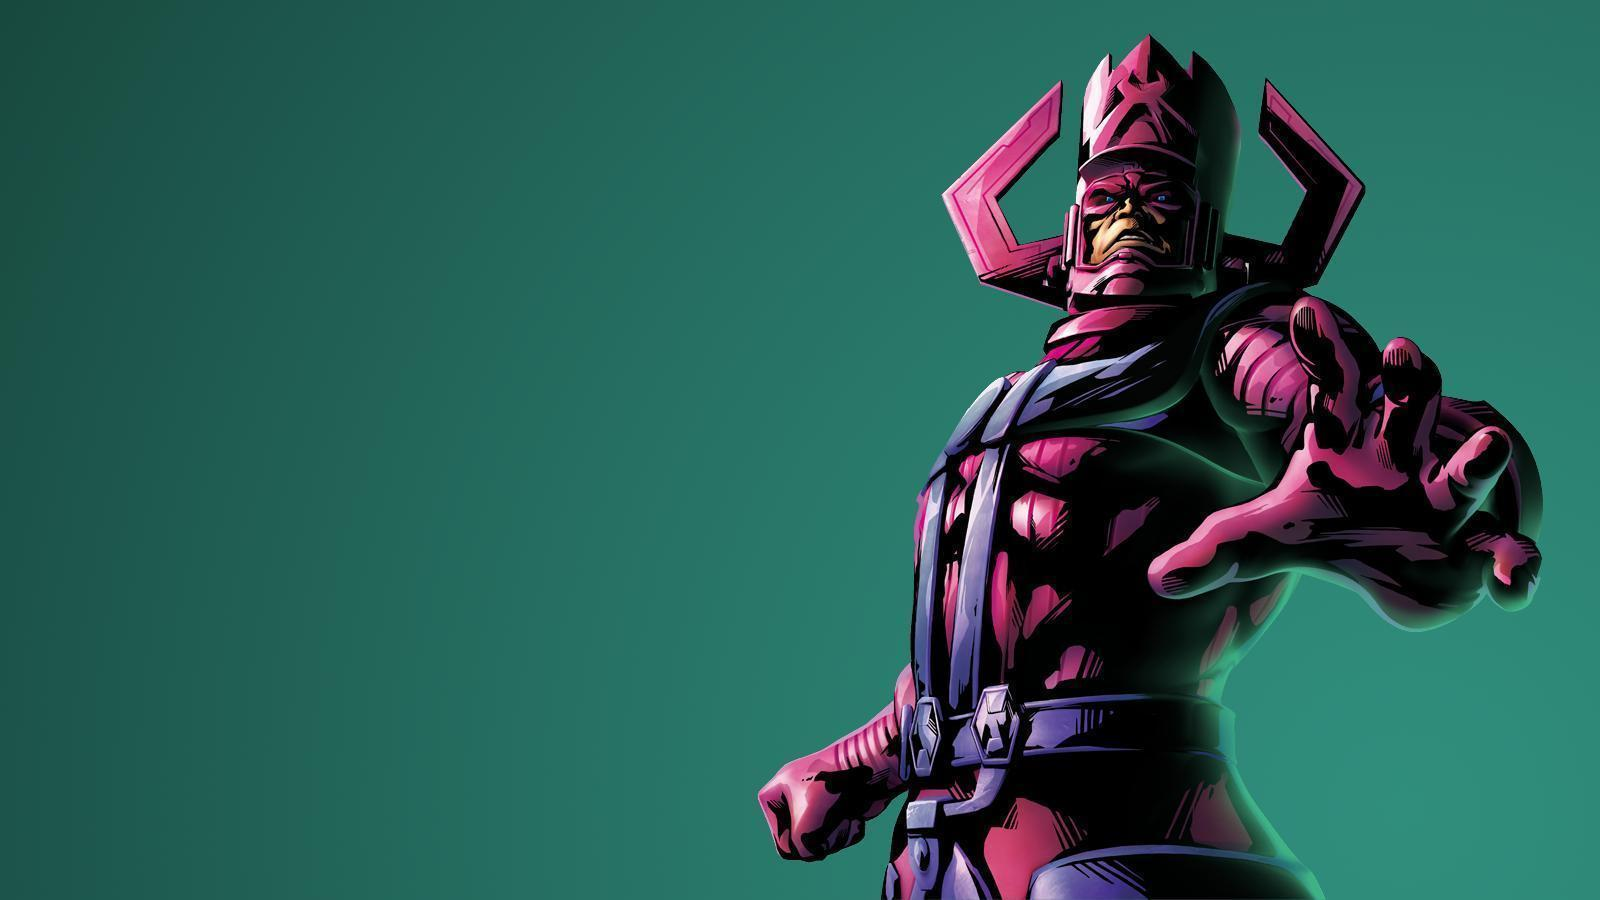 Galactus Wallpapers 18 263959 Image HD Wallpapers